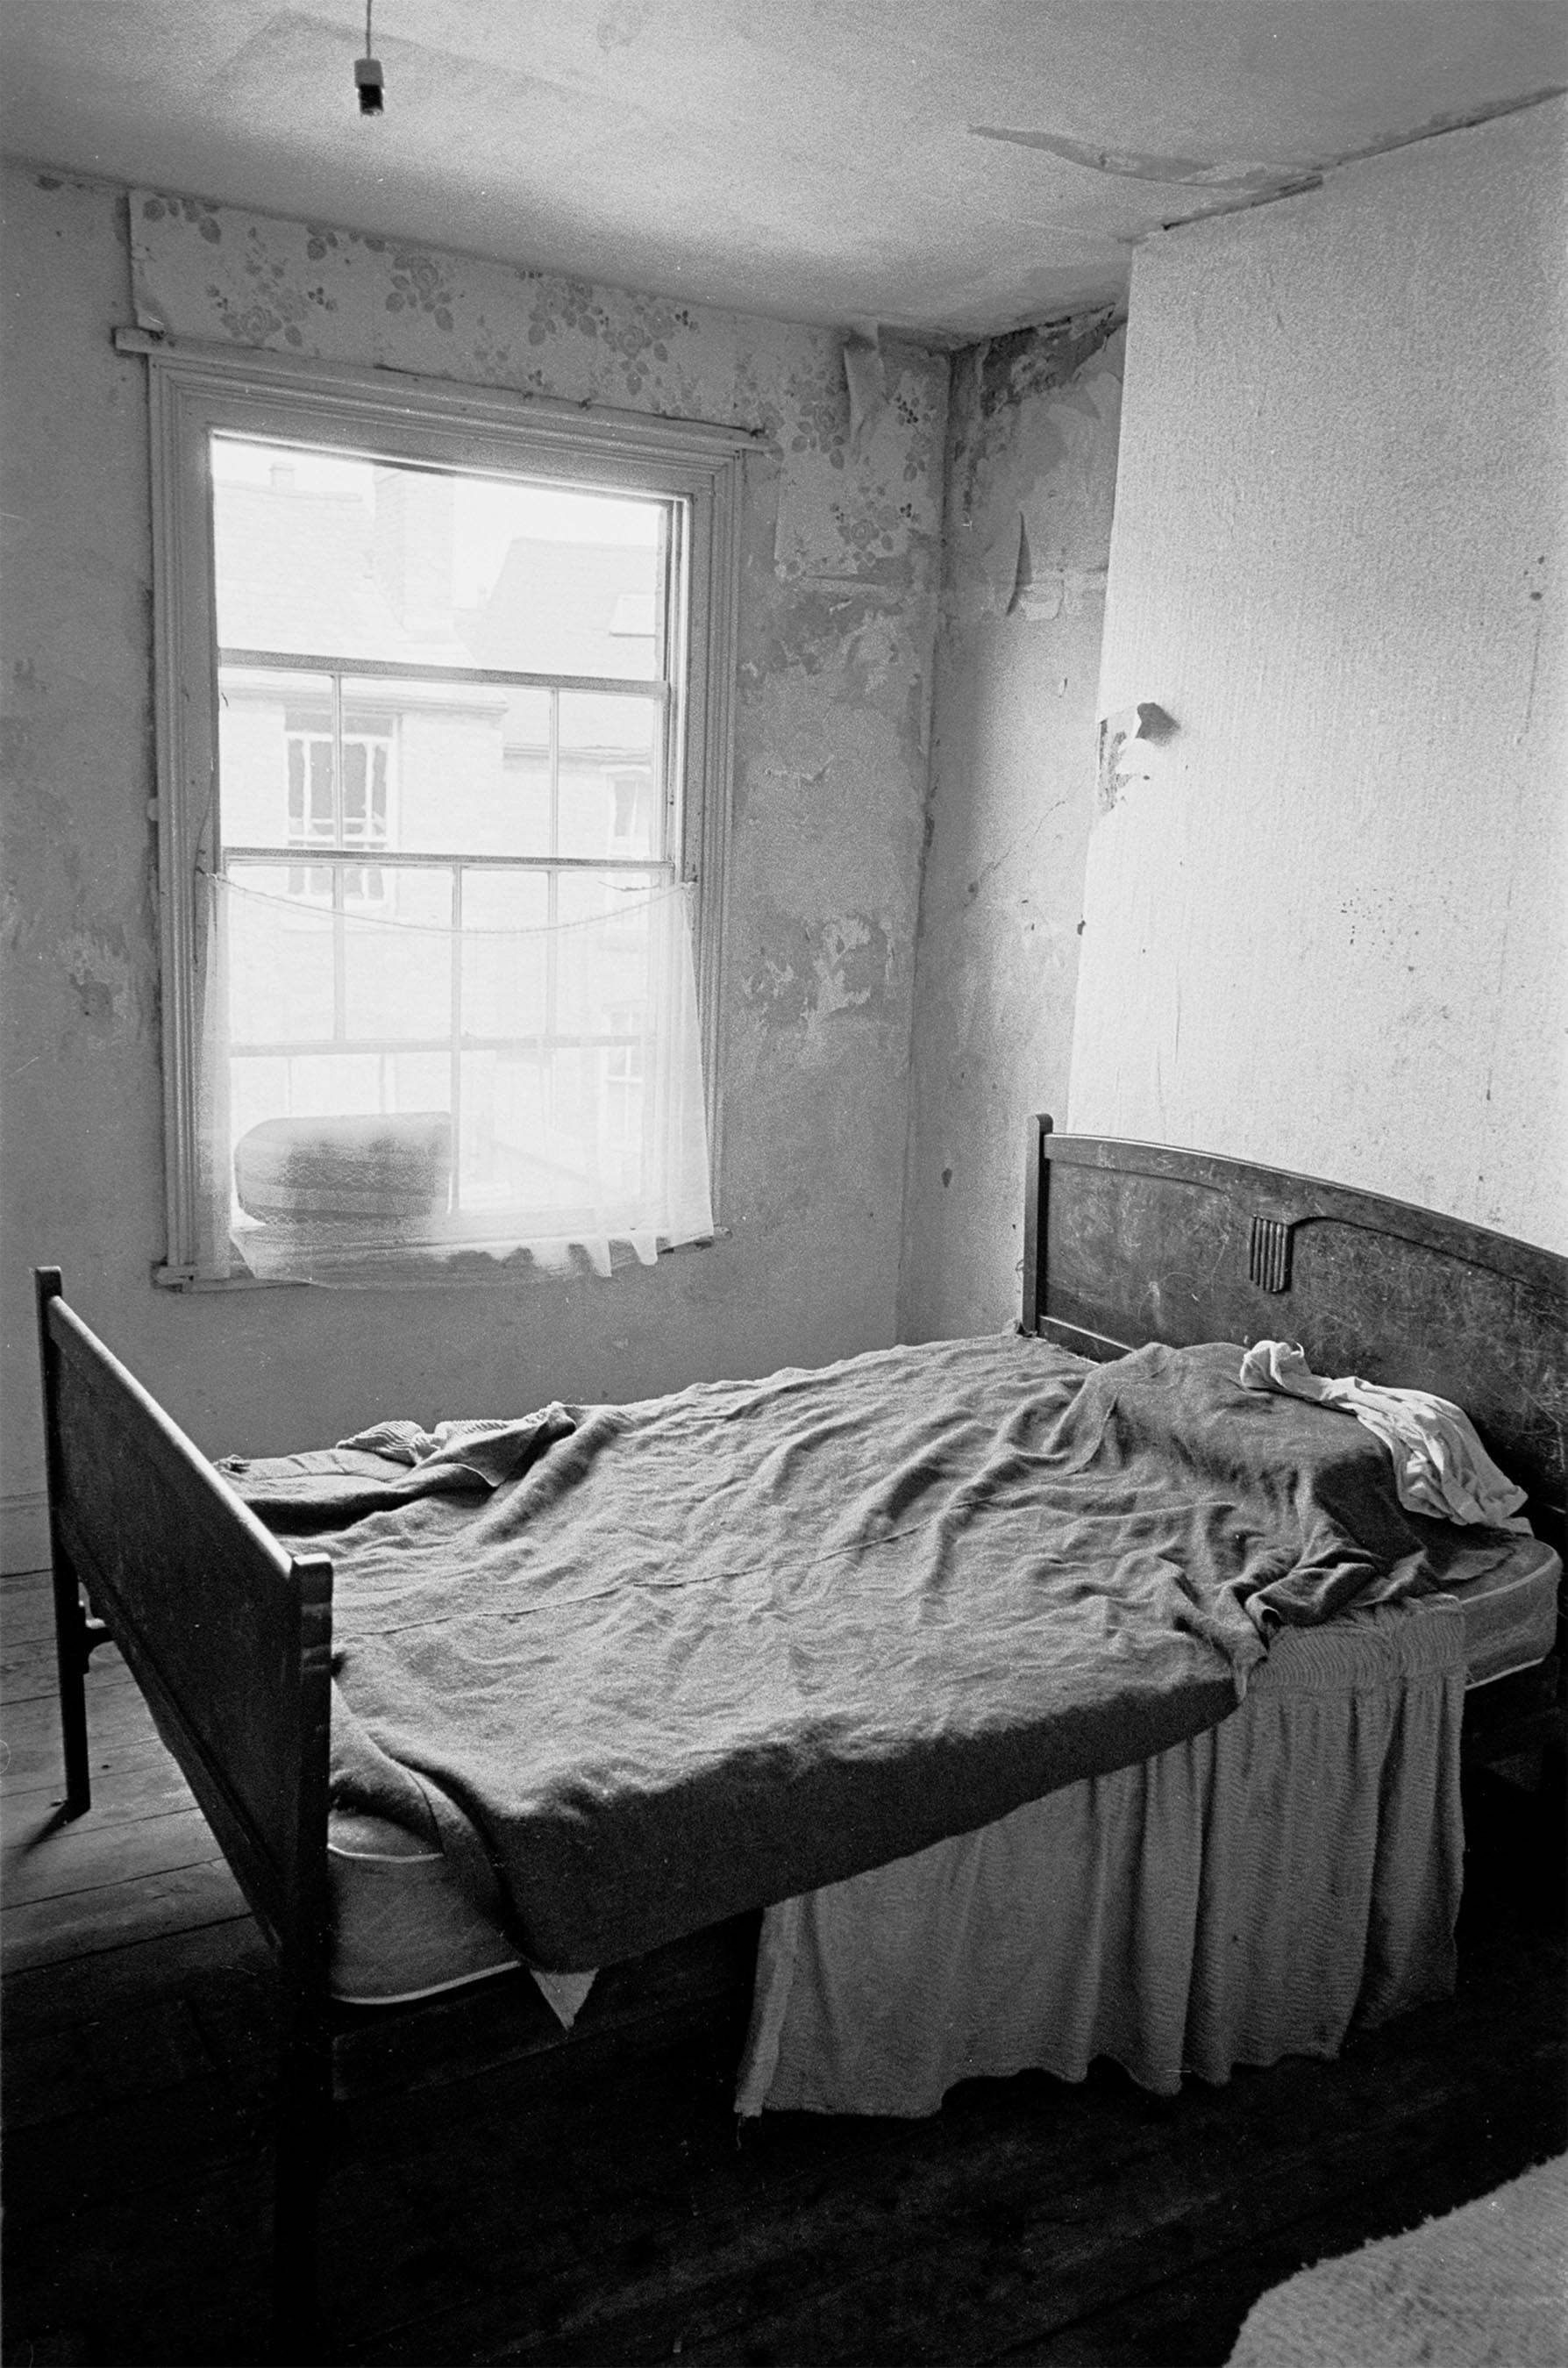 Photos Of Slum Life And Squalor In Birmingham 1969 72